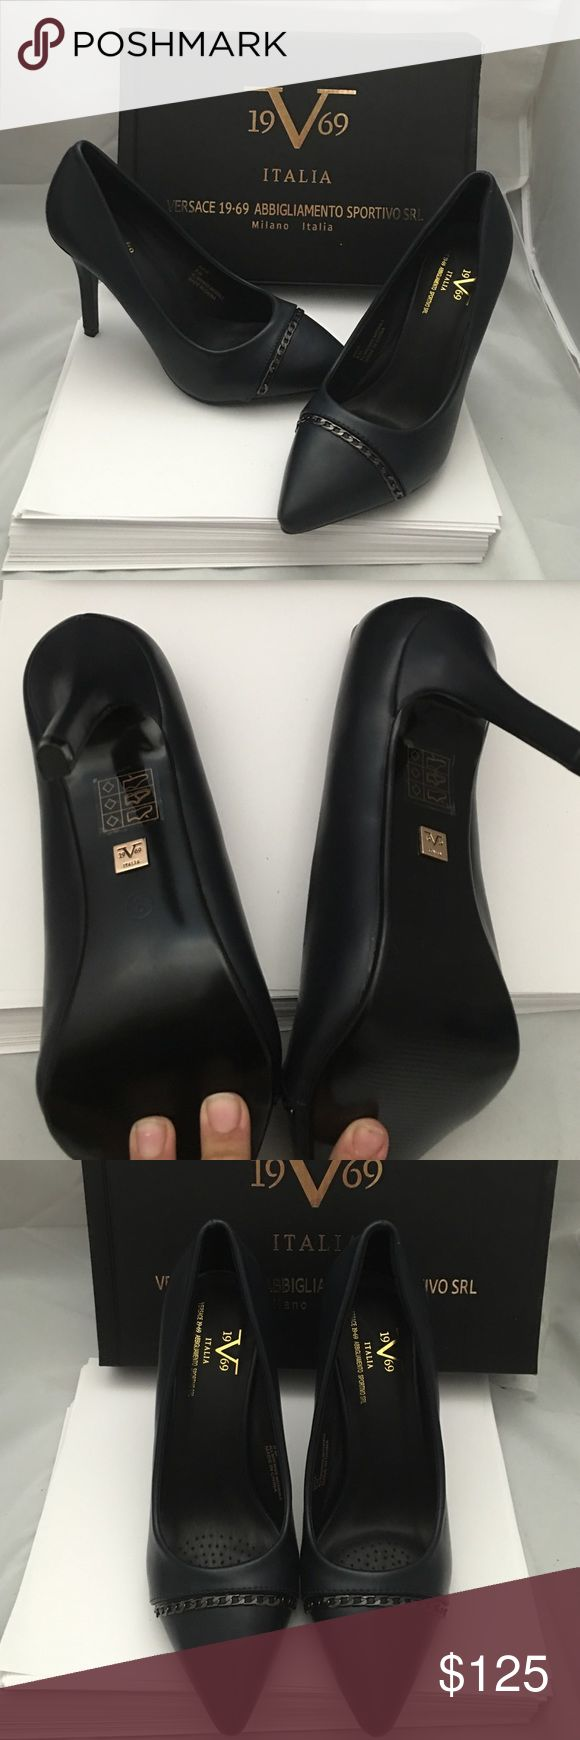 Authentic Versace navy pumps Brand new in box authentic navy pumps Italia  by Versace. Comes